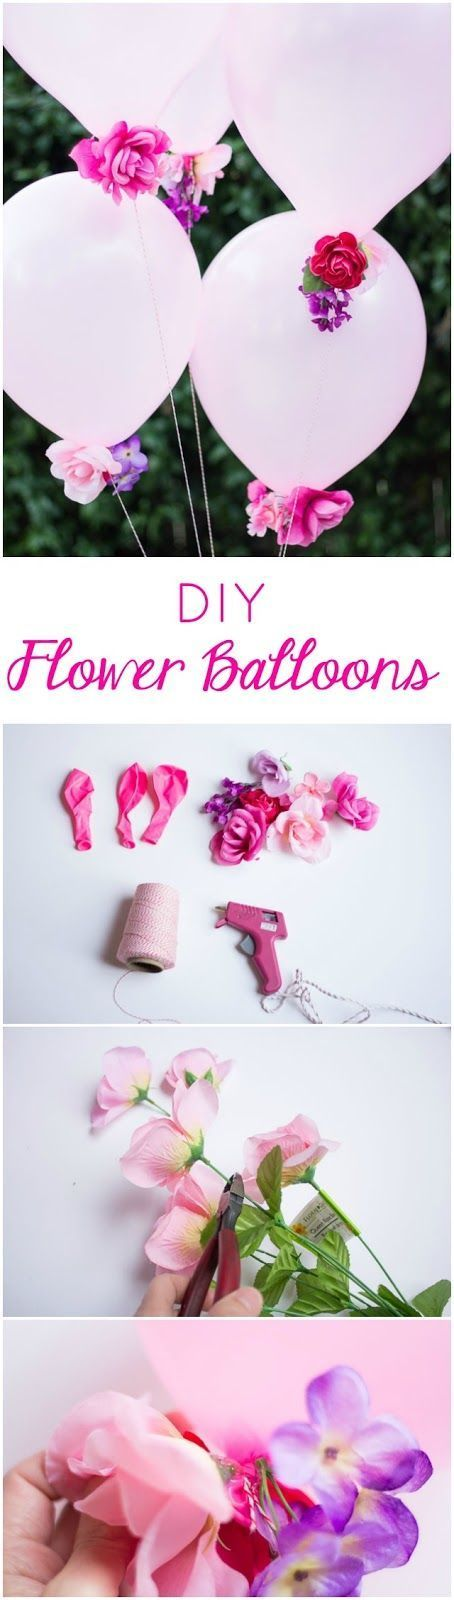 DIY Flower balloons - Combine artificial flowers with balloons for a gorgeous effect - perfect for weddings, showers, or a garden party!: